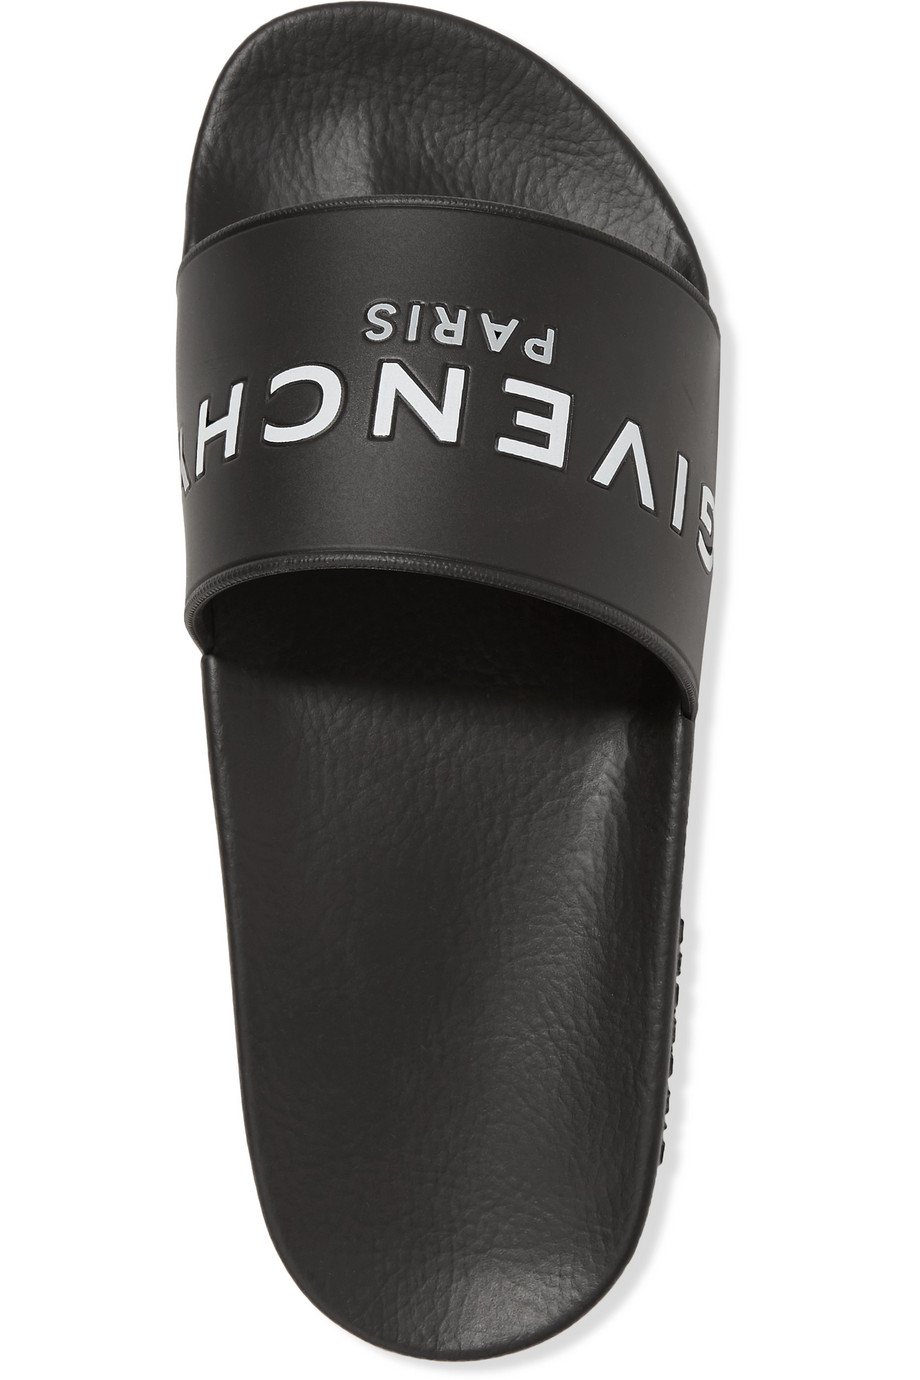 Summer slippers Givenchy buy Summer slippers Givenchy internet shop